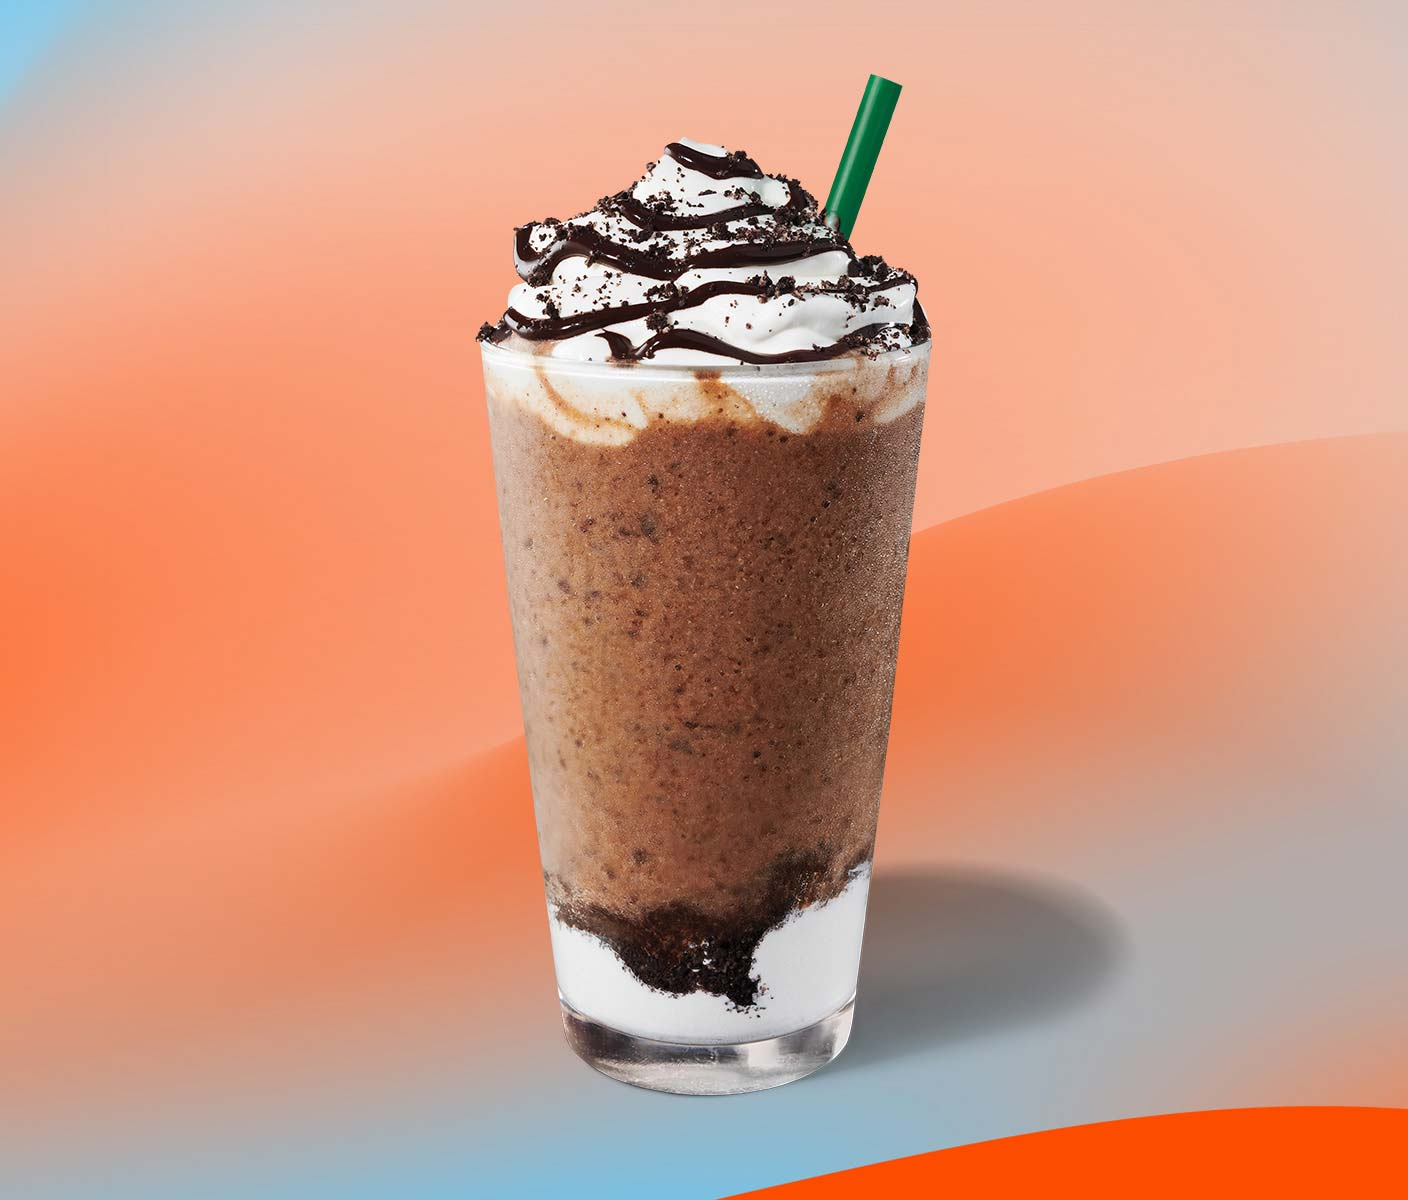 Blended coffee drink with whipped topping in a clear glass